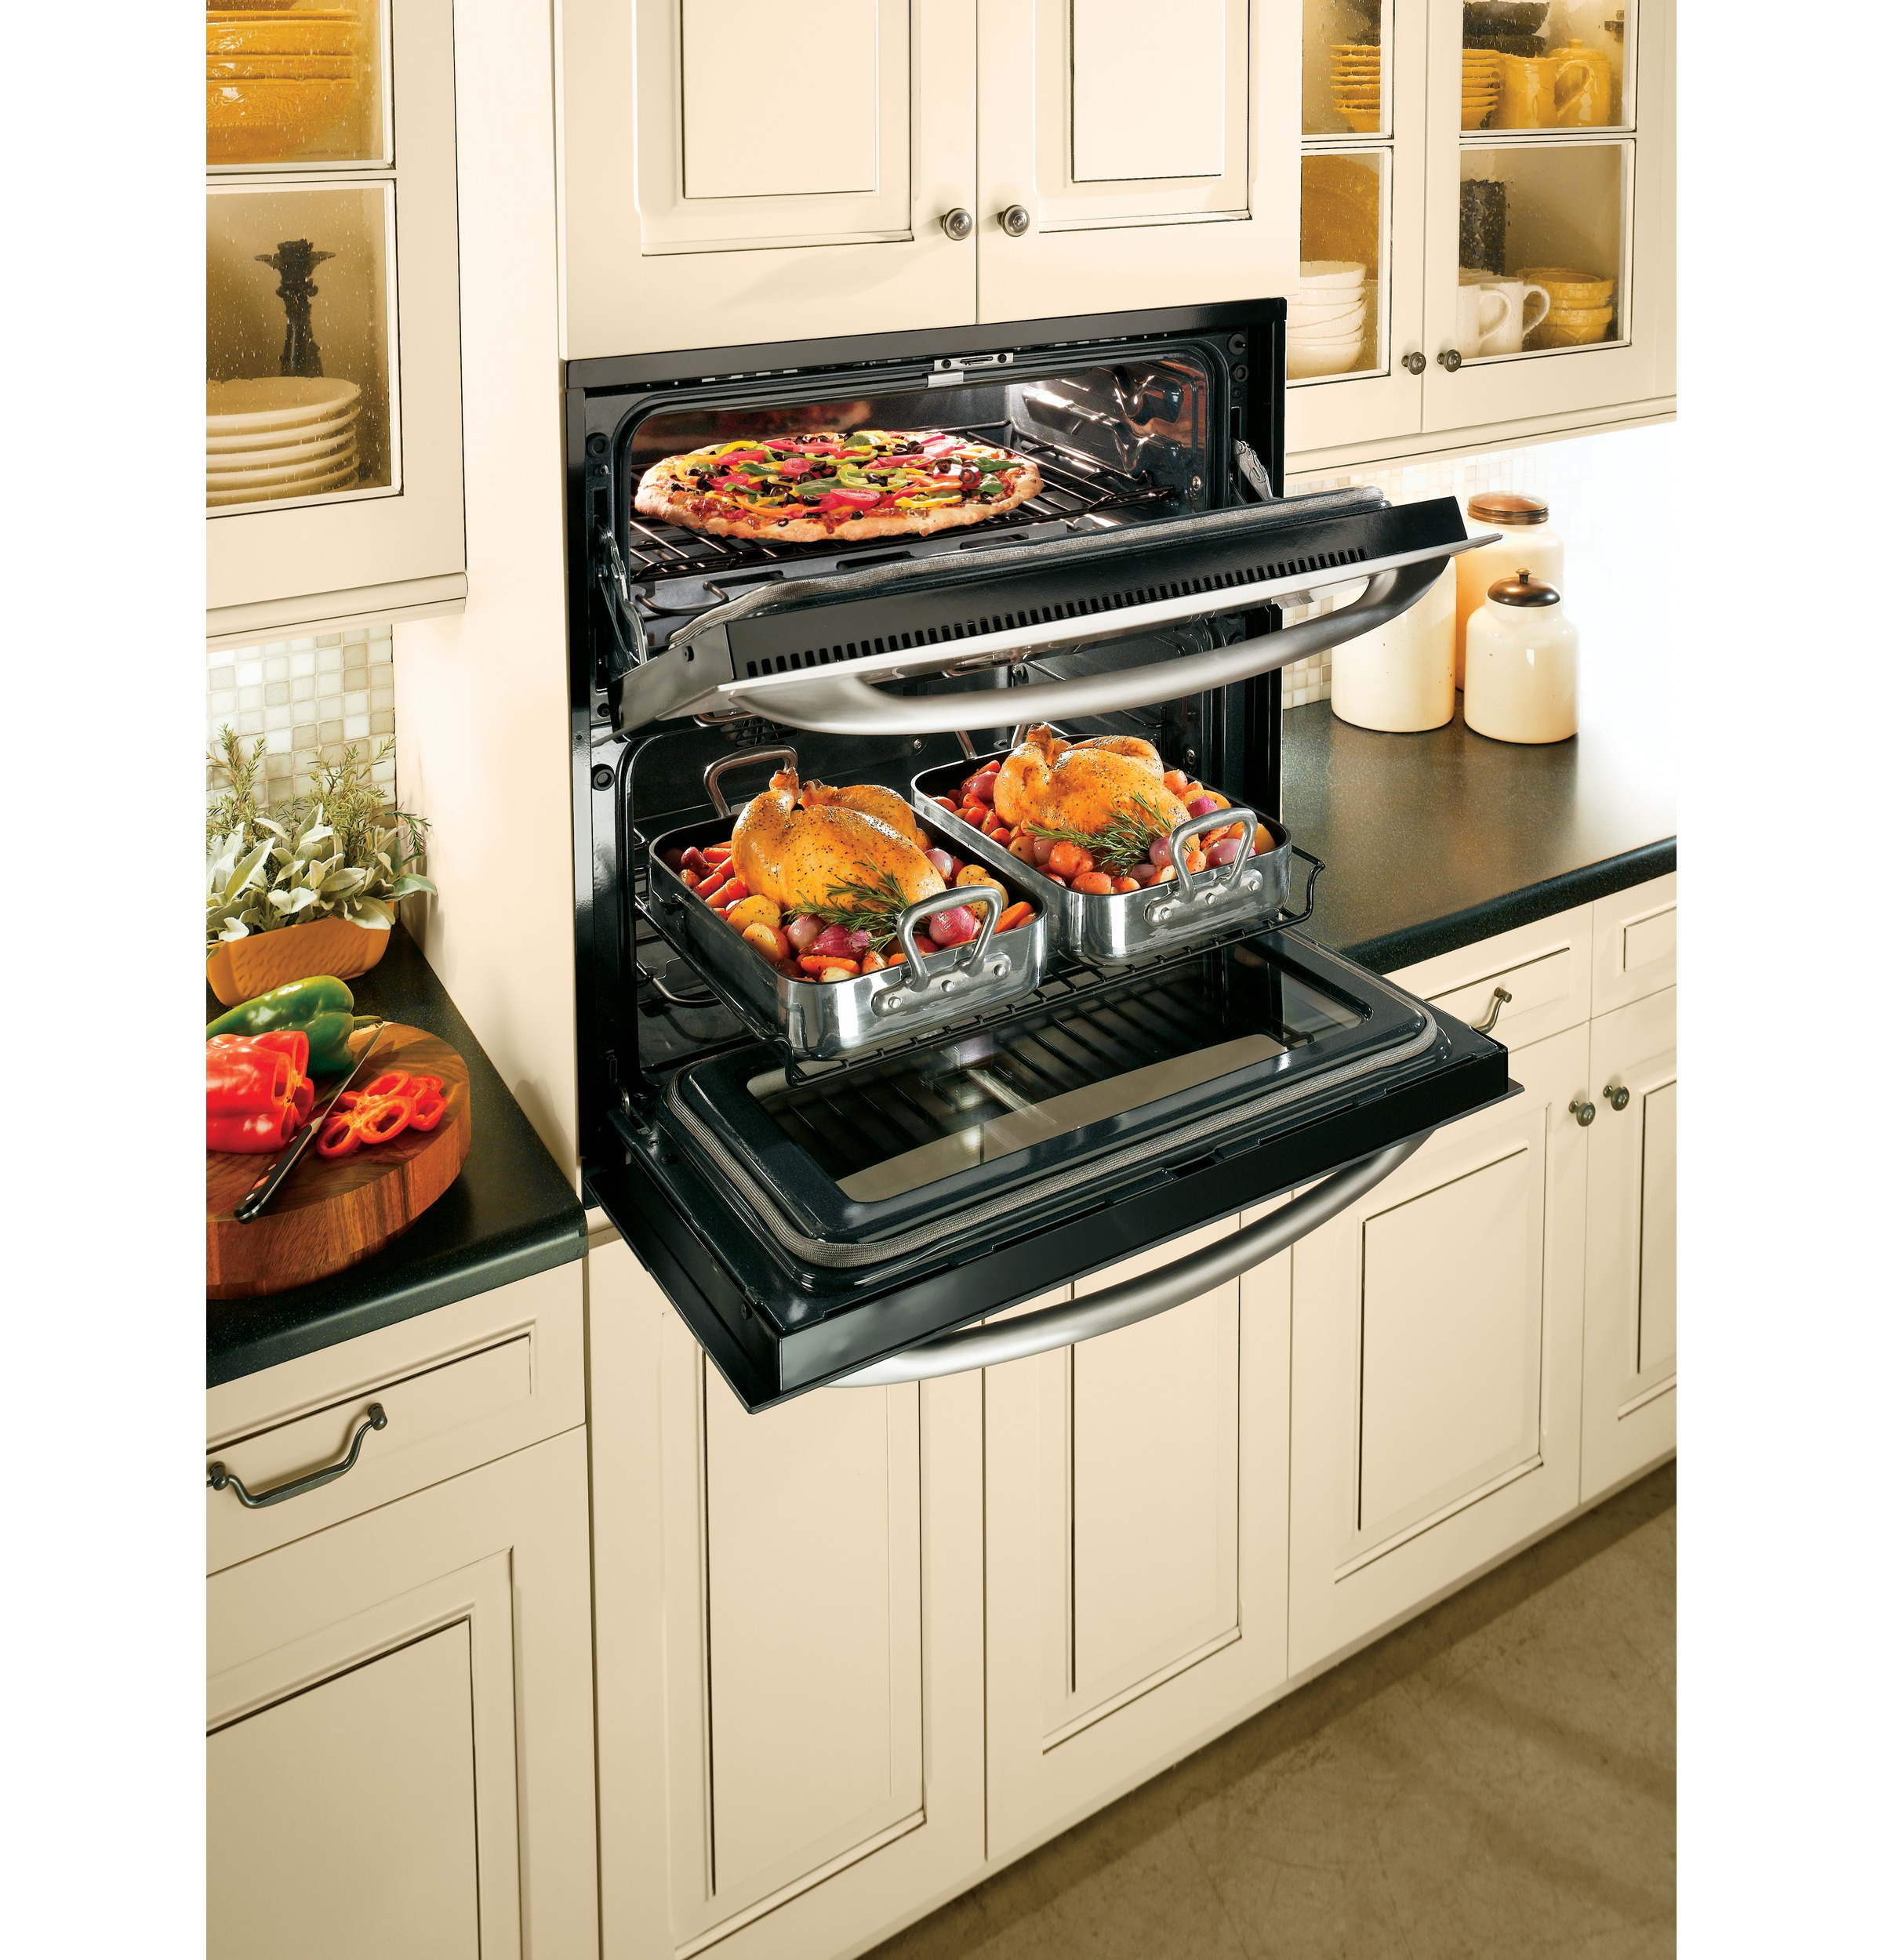 Ge Cooks Up Double Oven Versatility In One Small Space Ge Appliances Pressroom